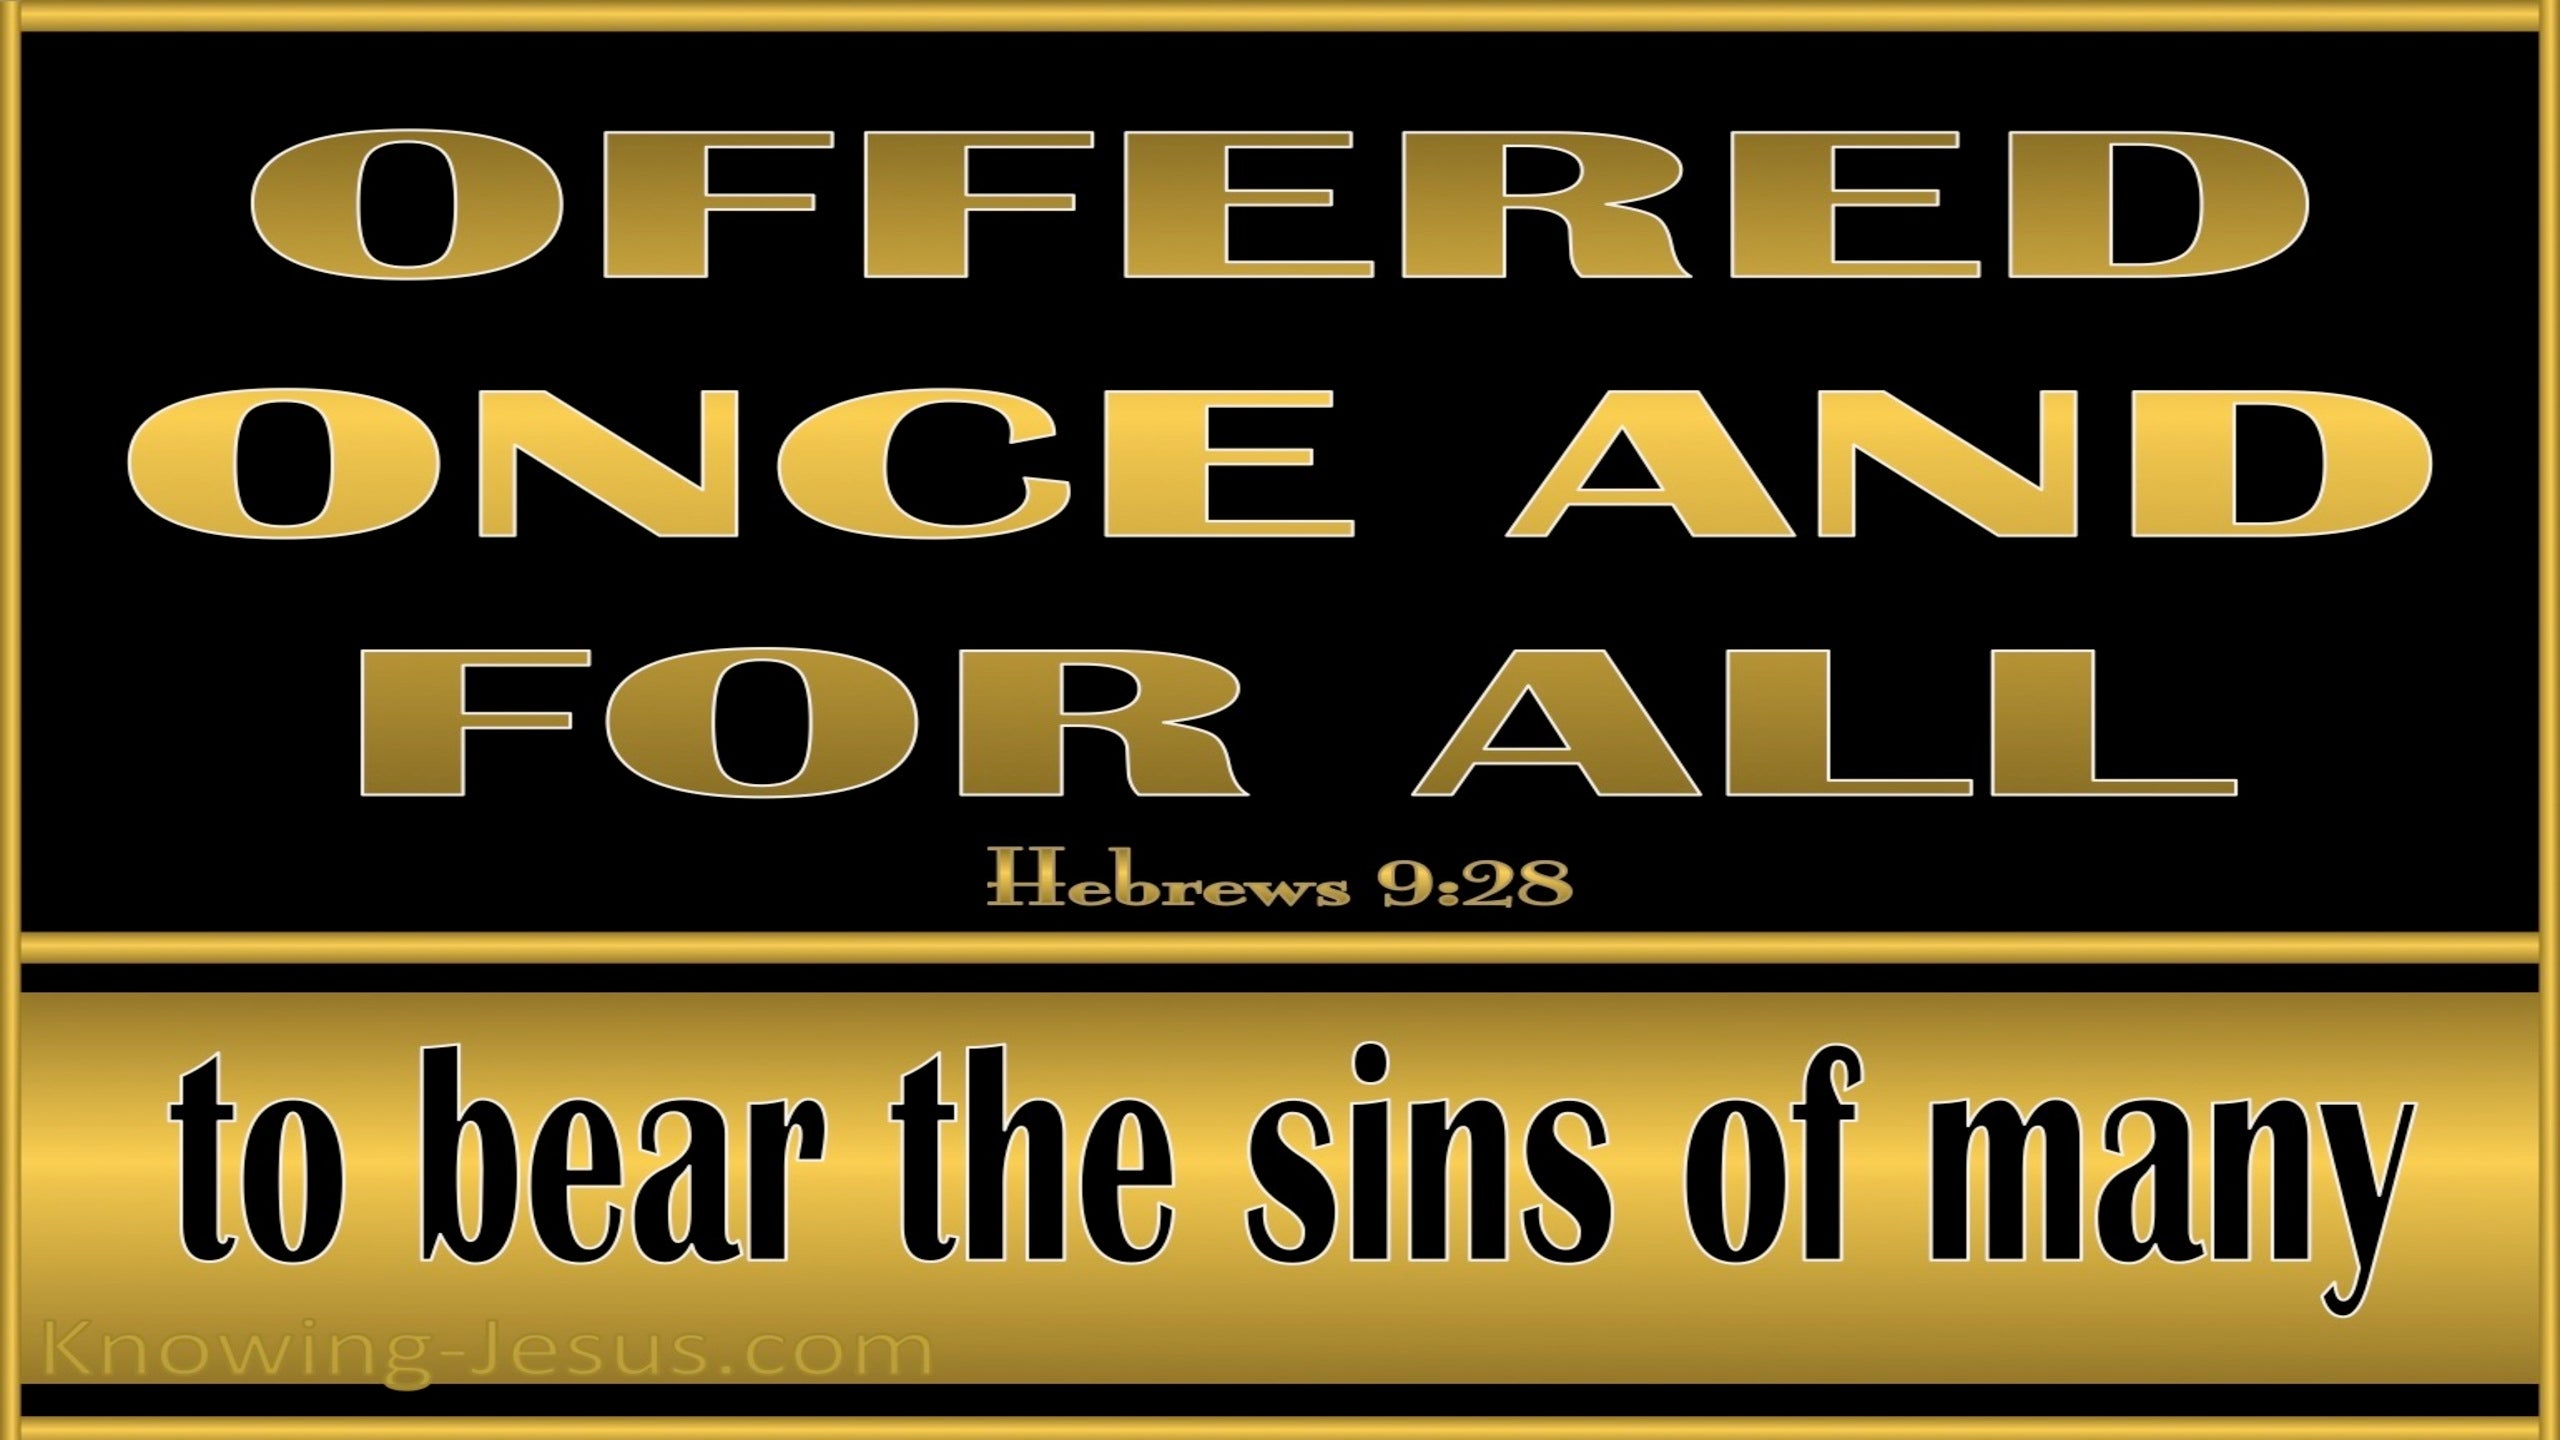 Hebrews 9:28 Christ Offered Once For All (gold)